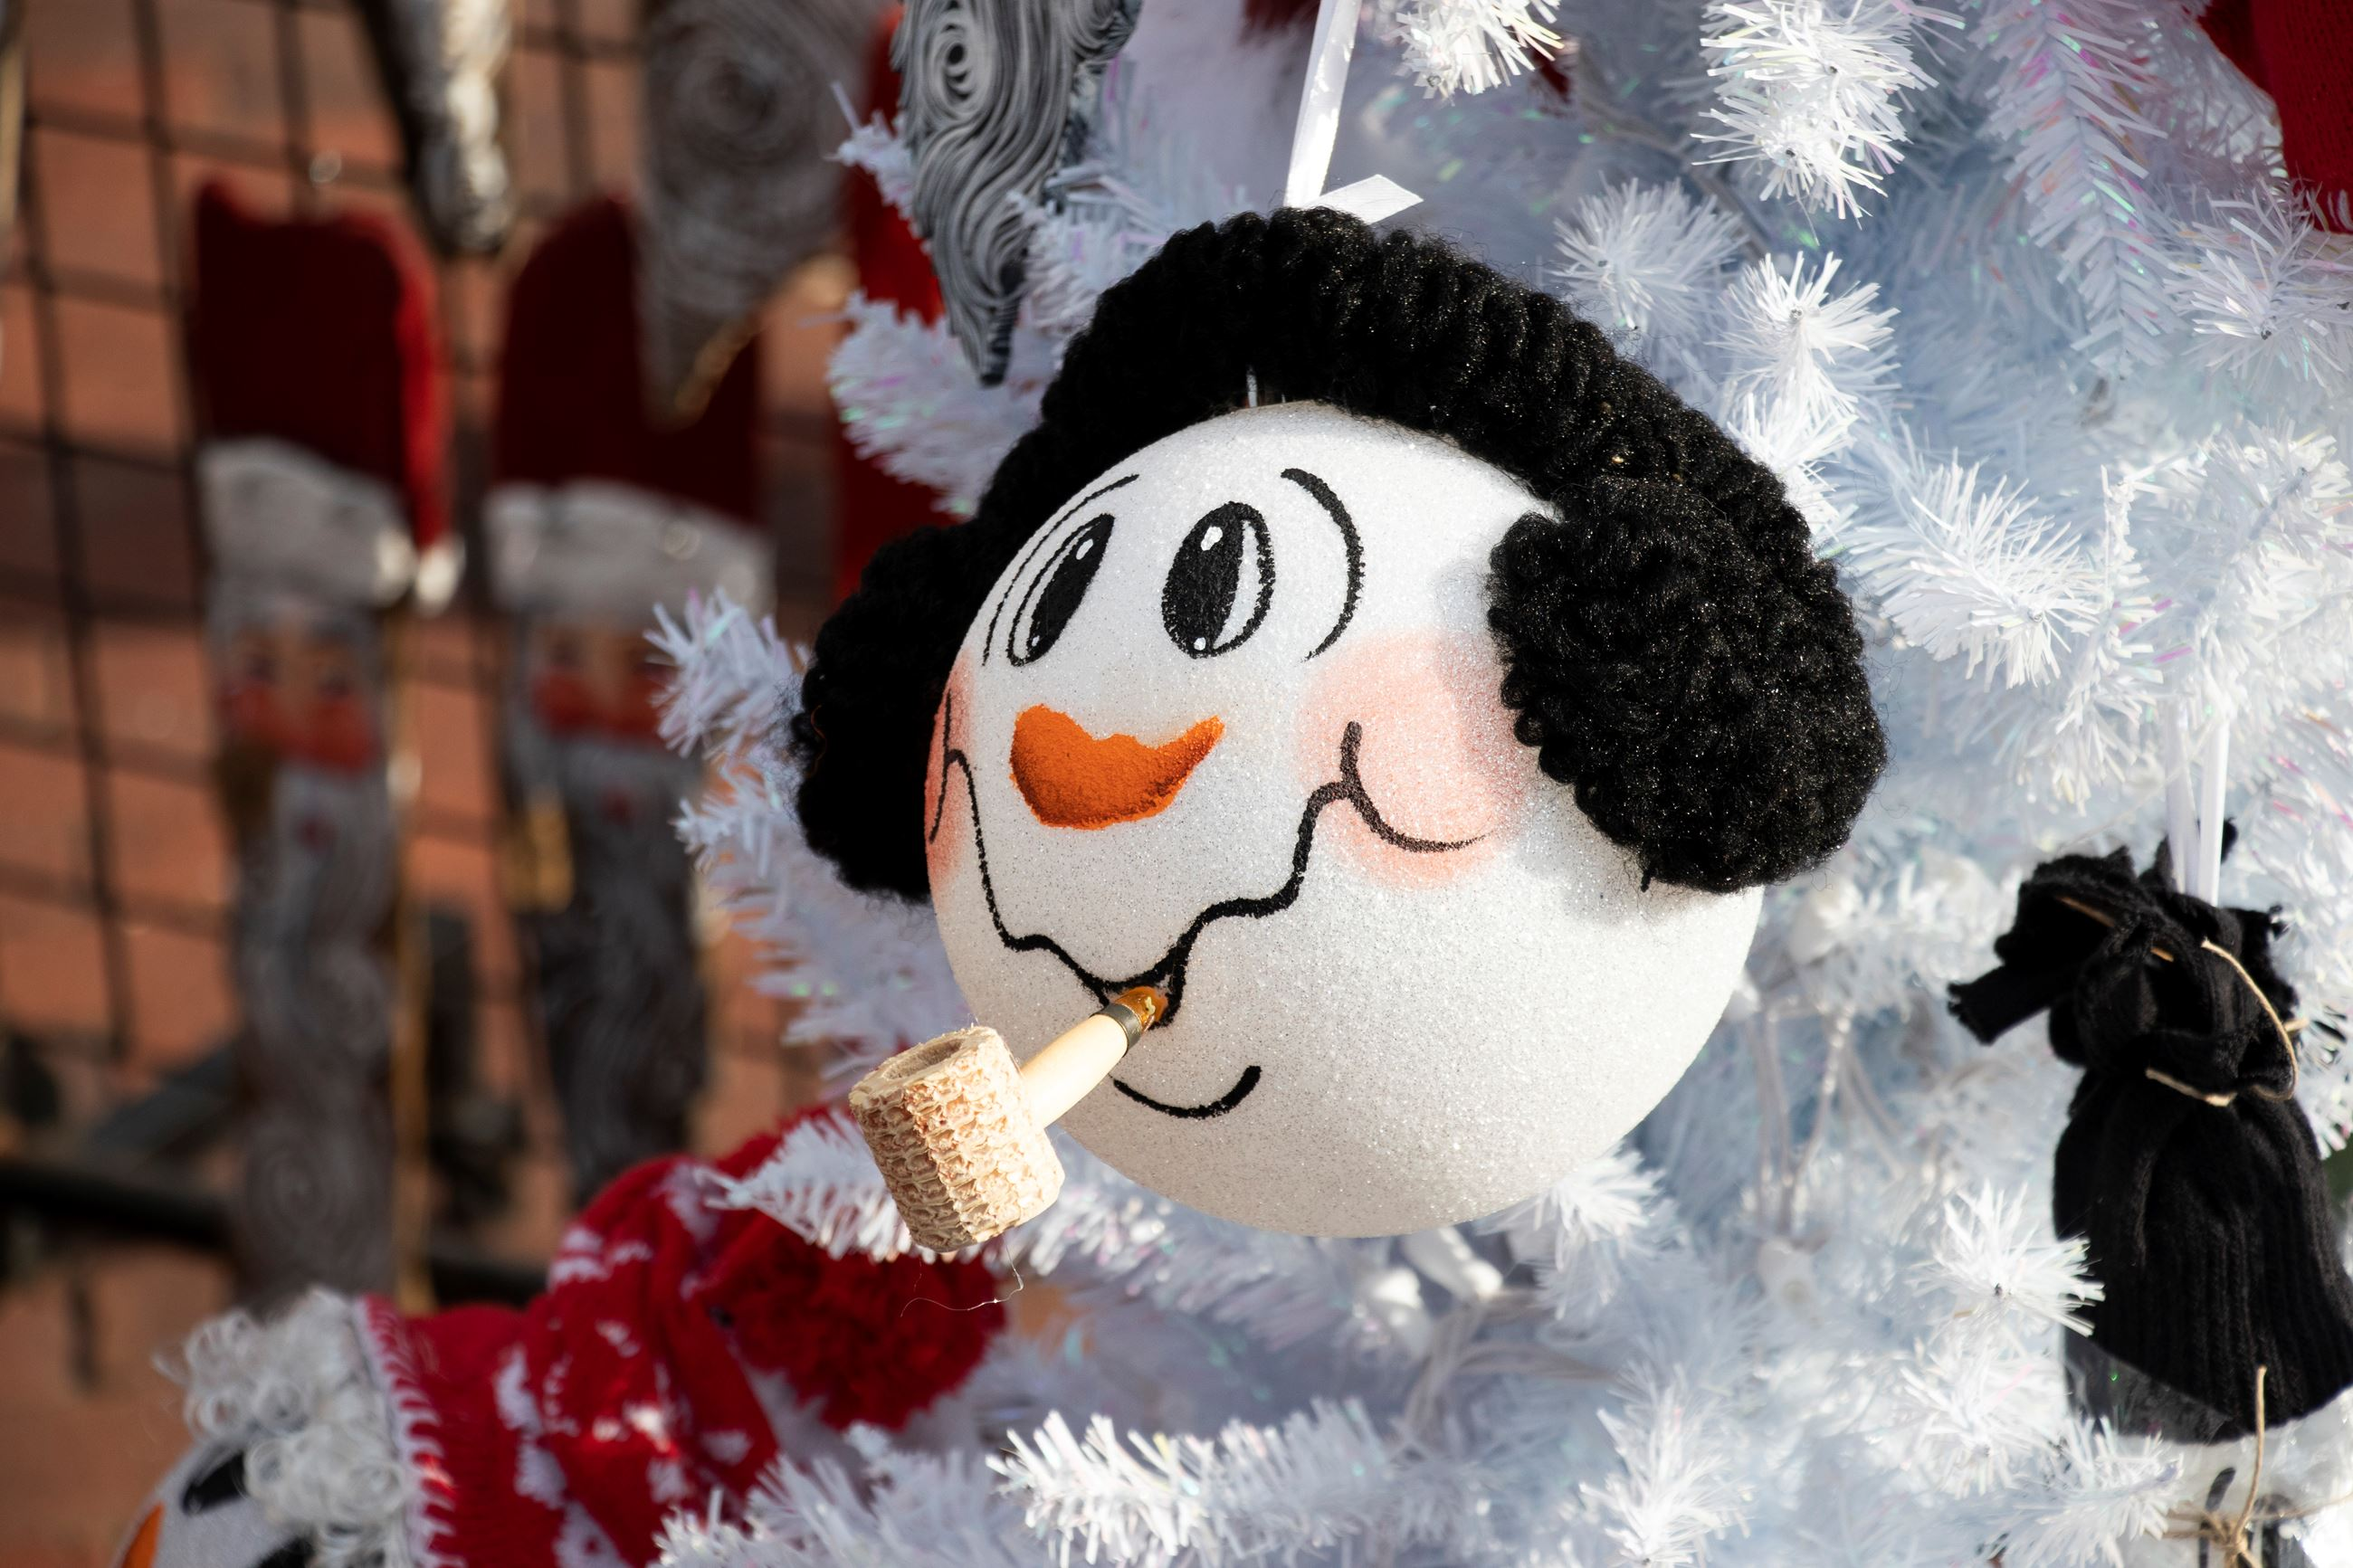 Snowman Ornament made by Artist Sheila Moore